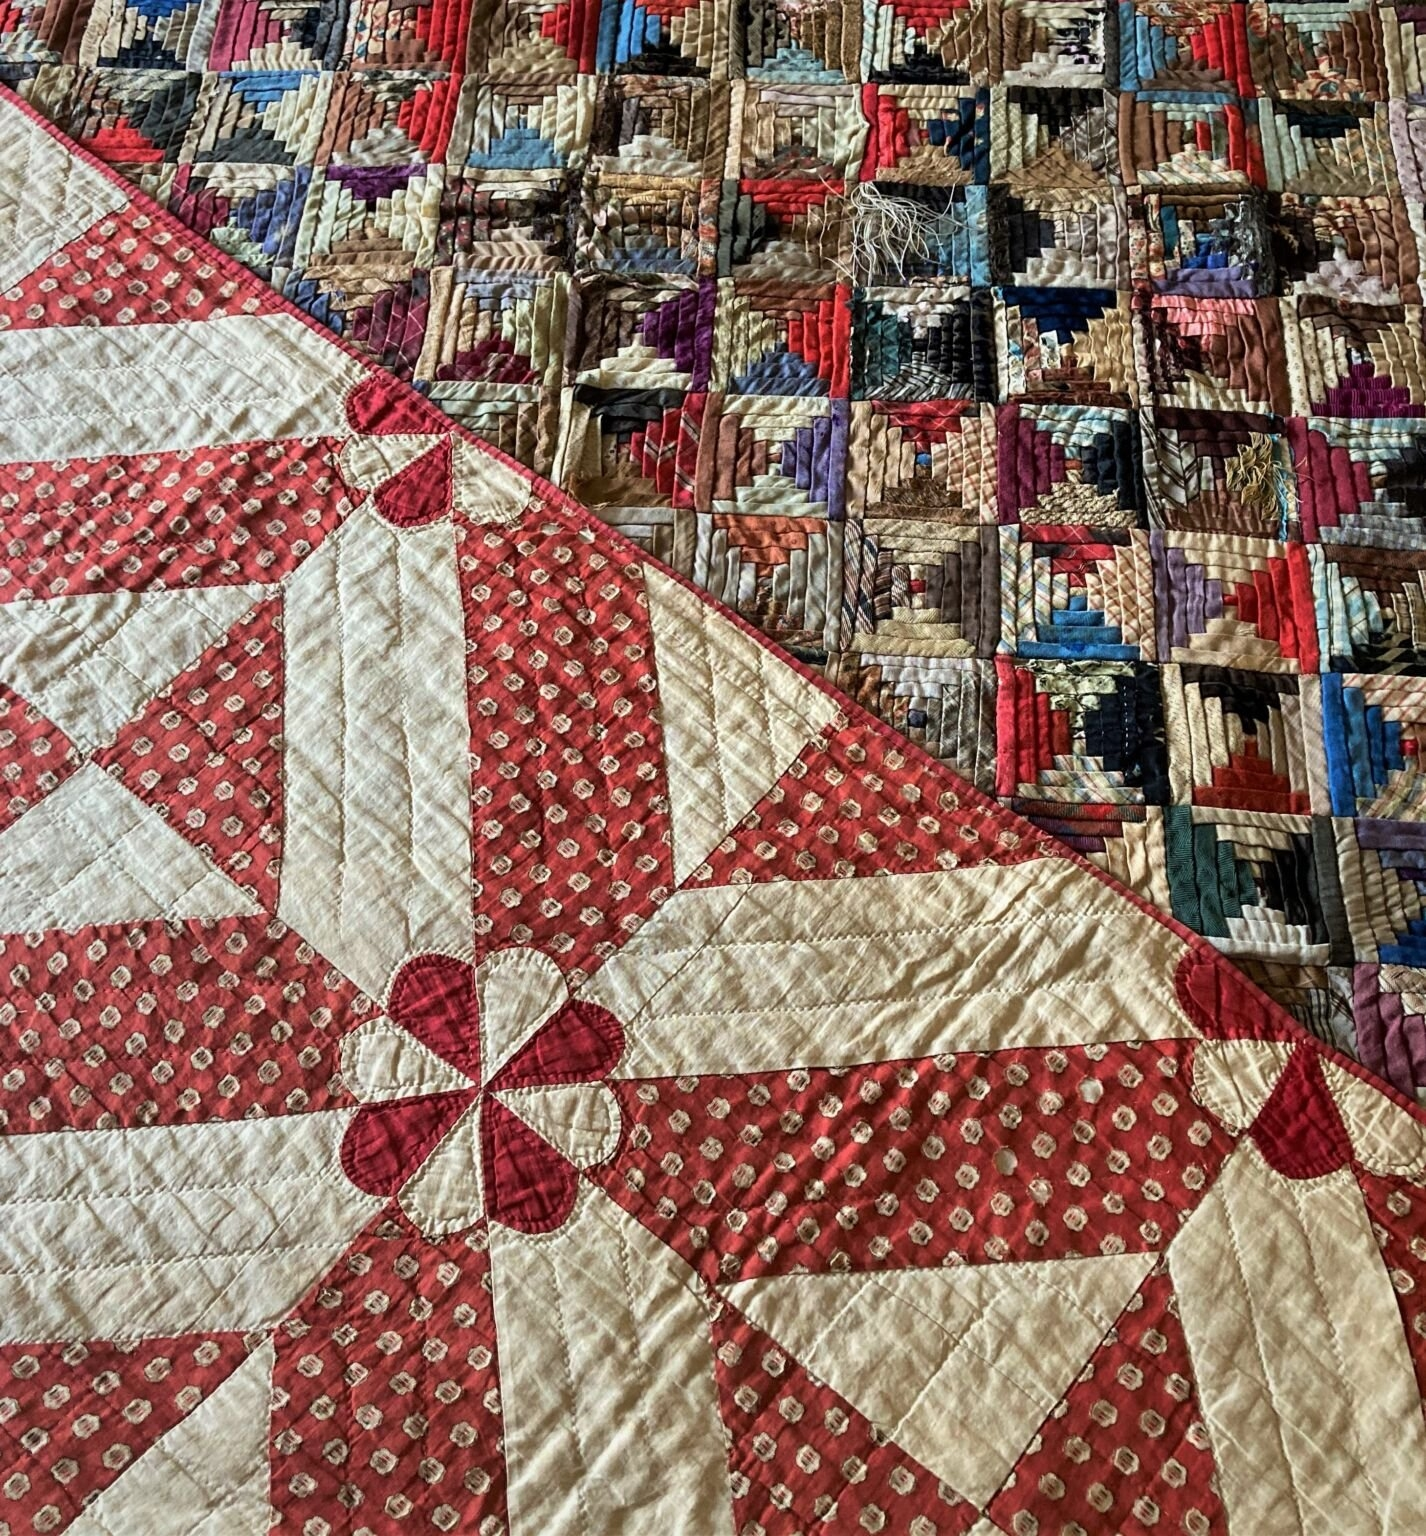 Two folded quilts, each seen in part. One is red and white, with a circle in the middle of each square of the quilt and radiating red lines on a white background. The other quilt is a riot of many different colours.